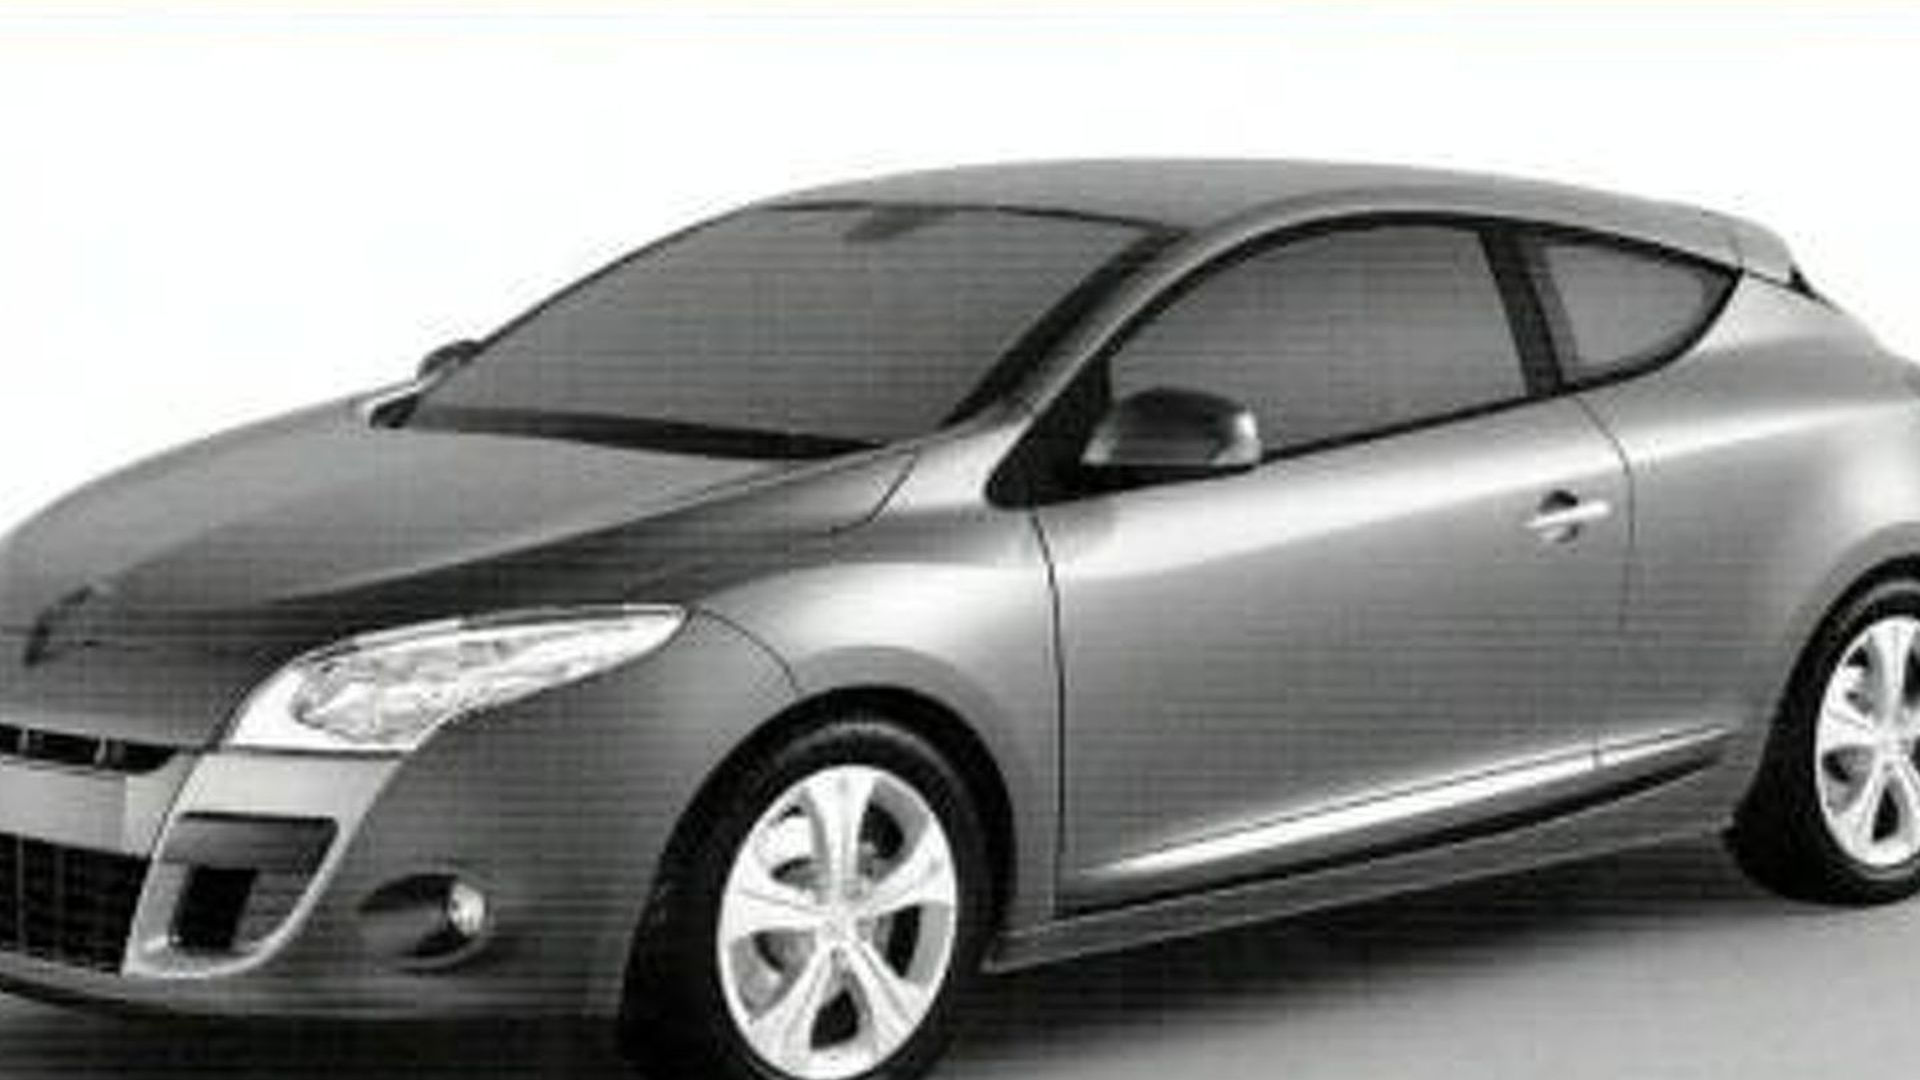 Leaked Design Shapes of Megane III and Scenic?